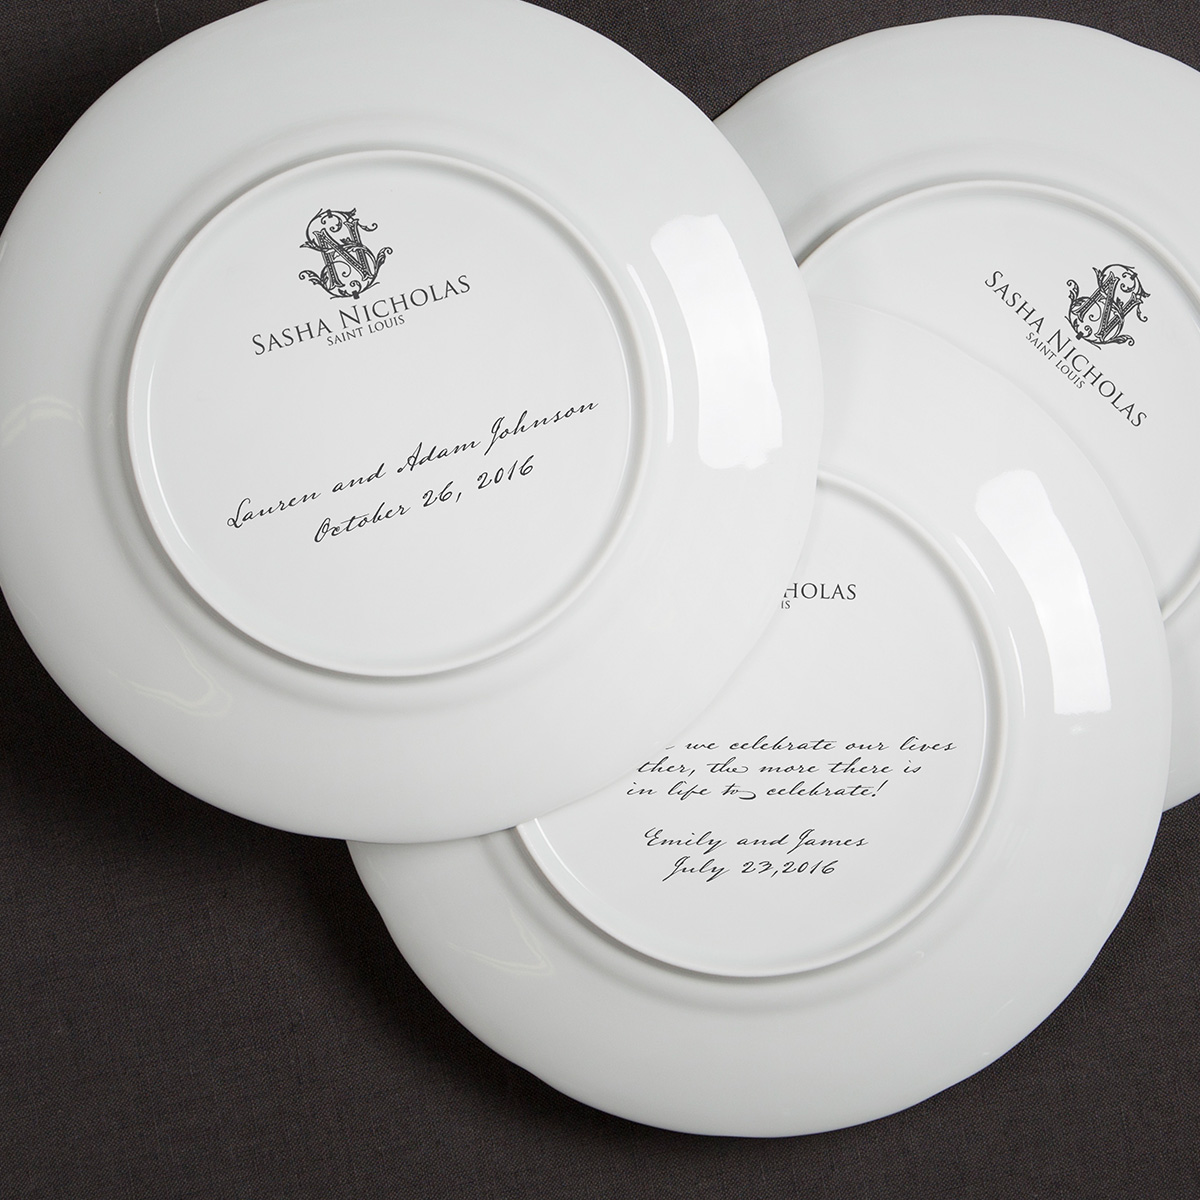 A beautiful addition to your dinnerware collection and to adorn your tablescapes with. It makes the perfect gift for your wedding registry and has the option to include an inscription on back. Choose from their signature font styles or use a custom monogram or crest of your choice! | Sasha Nicholas's white porcelain 24K gold weave dinner plate